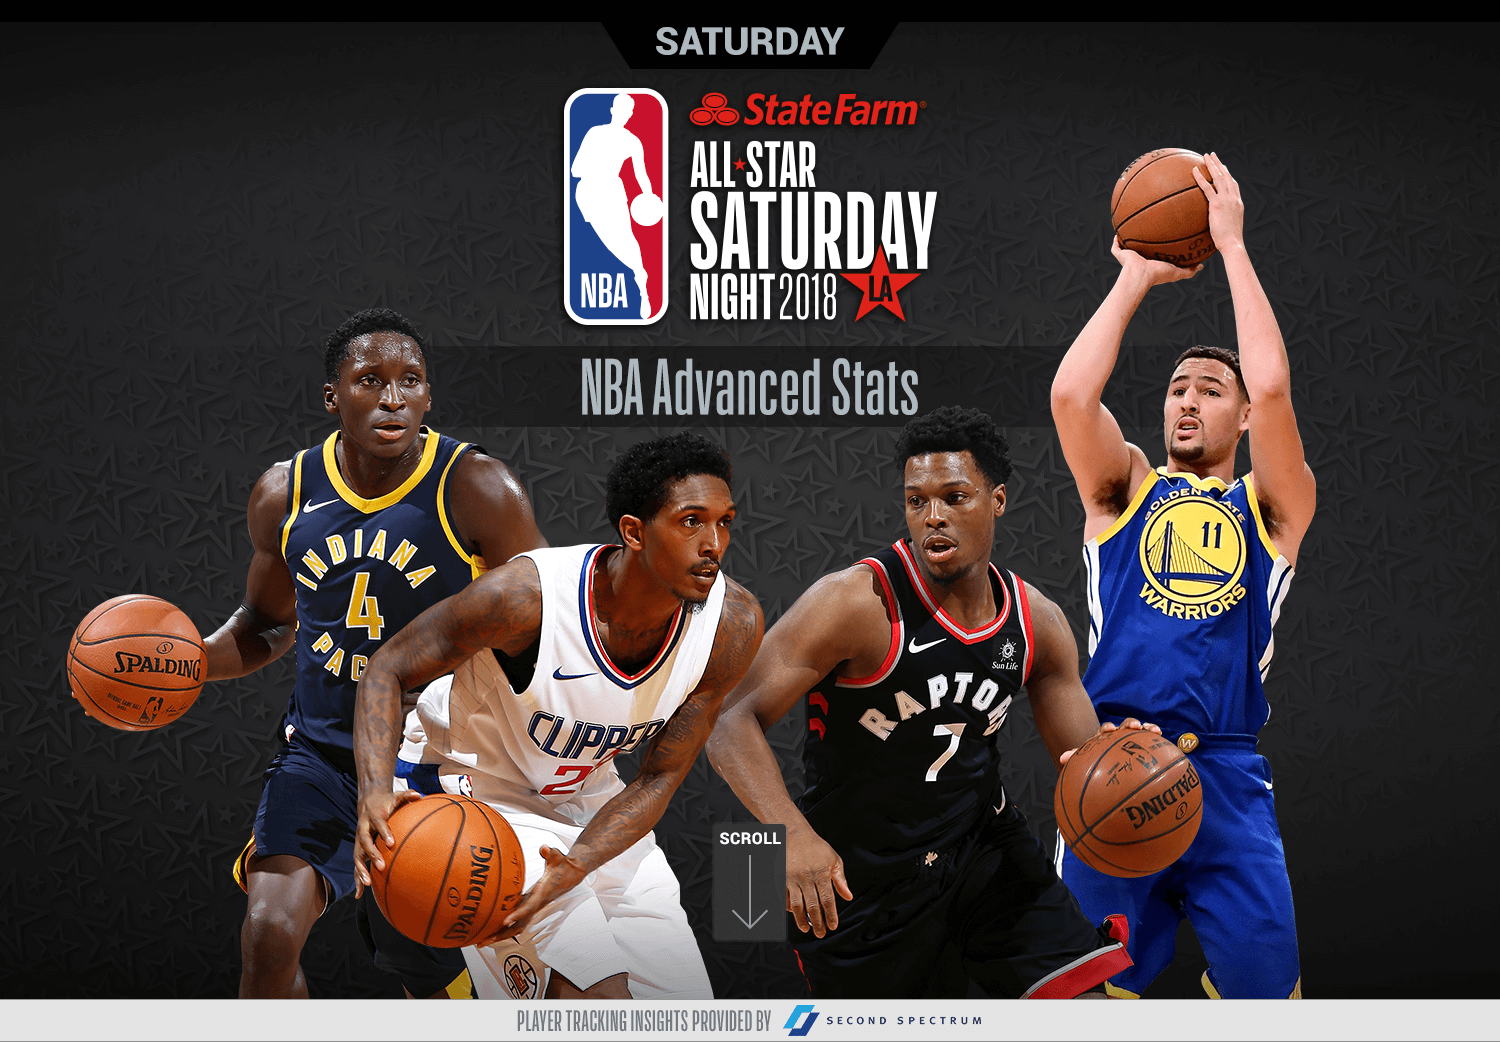 All-Star Saturday Night